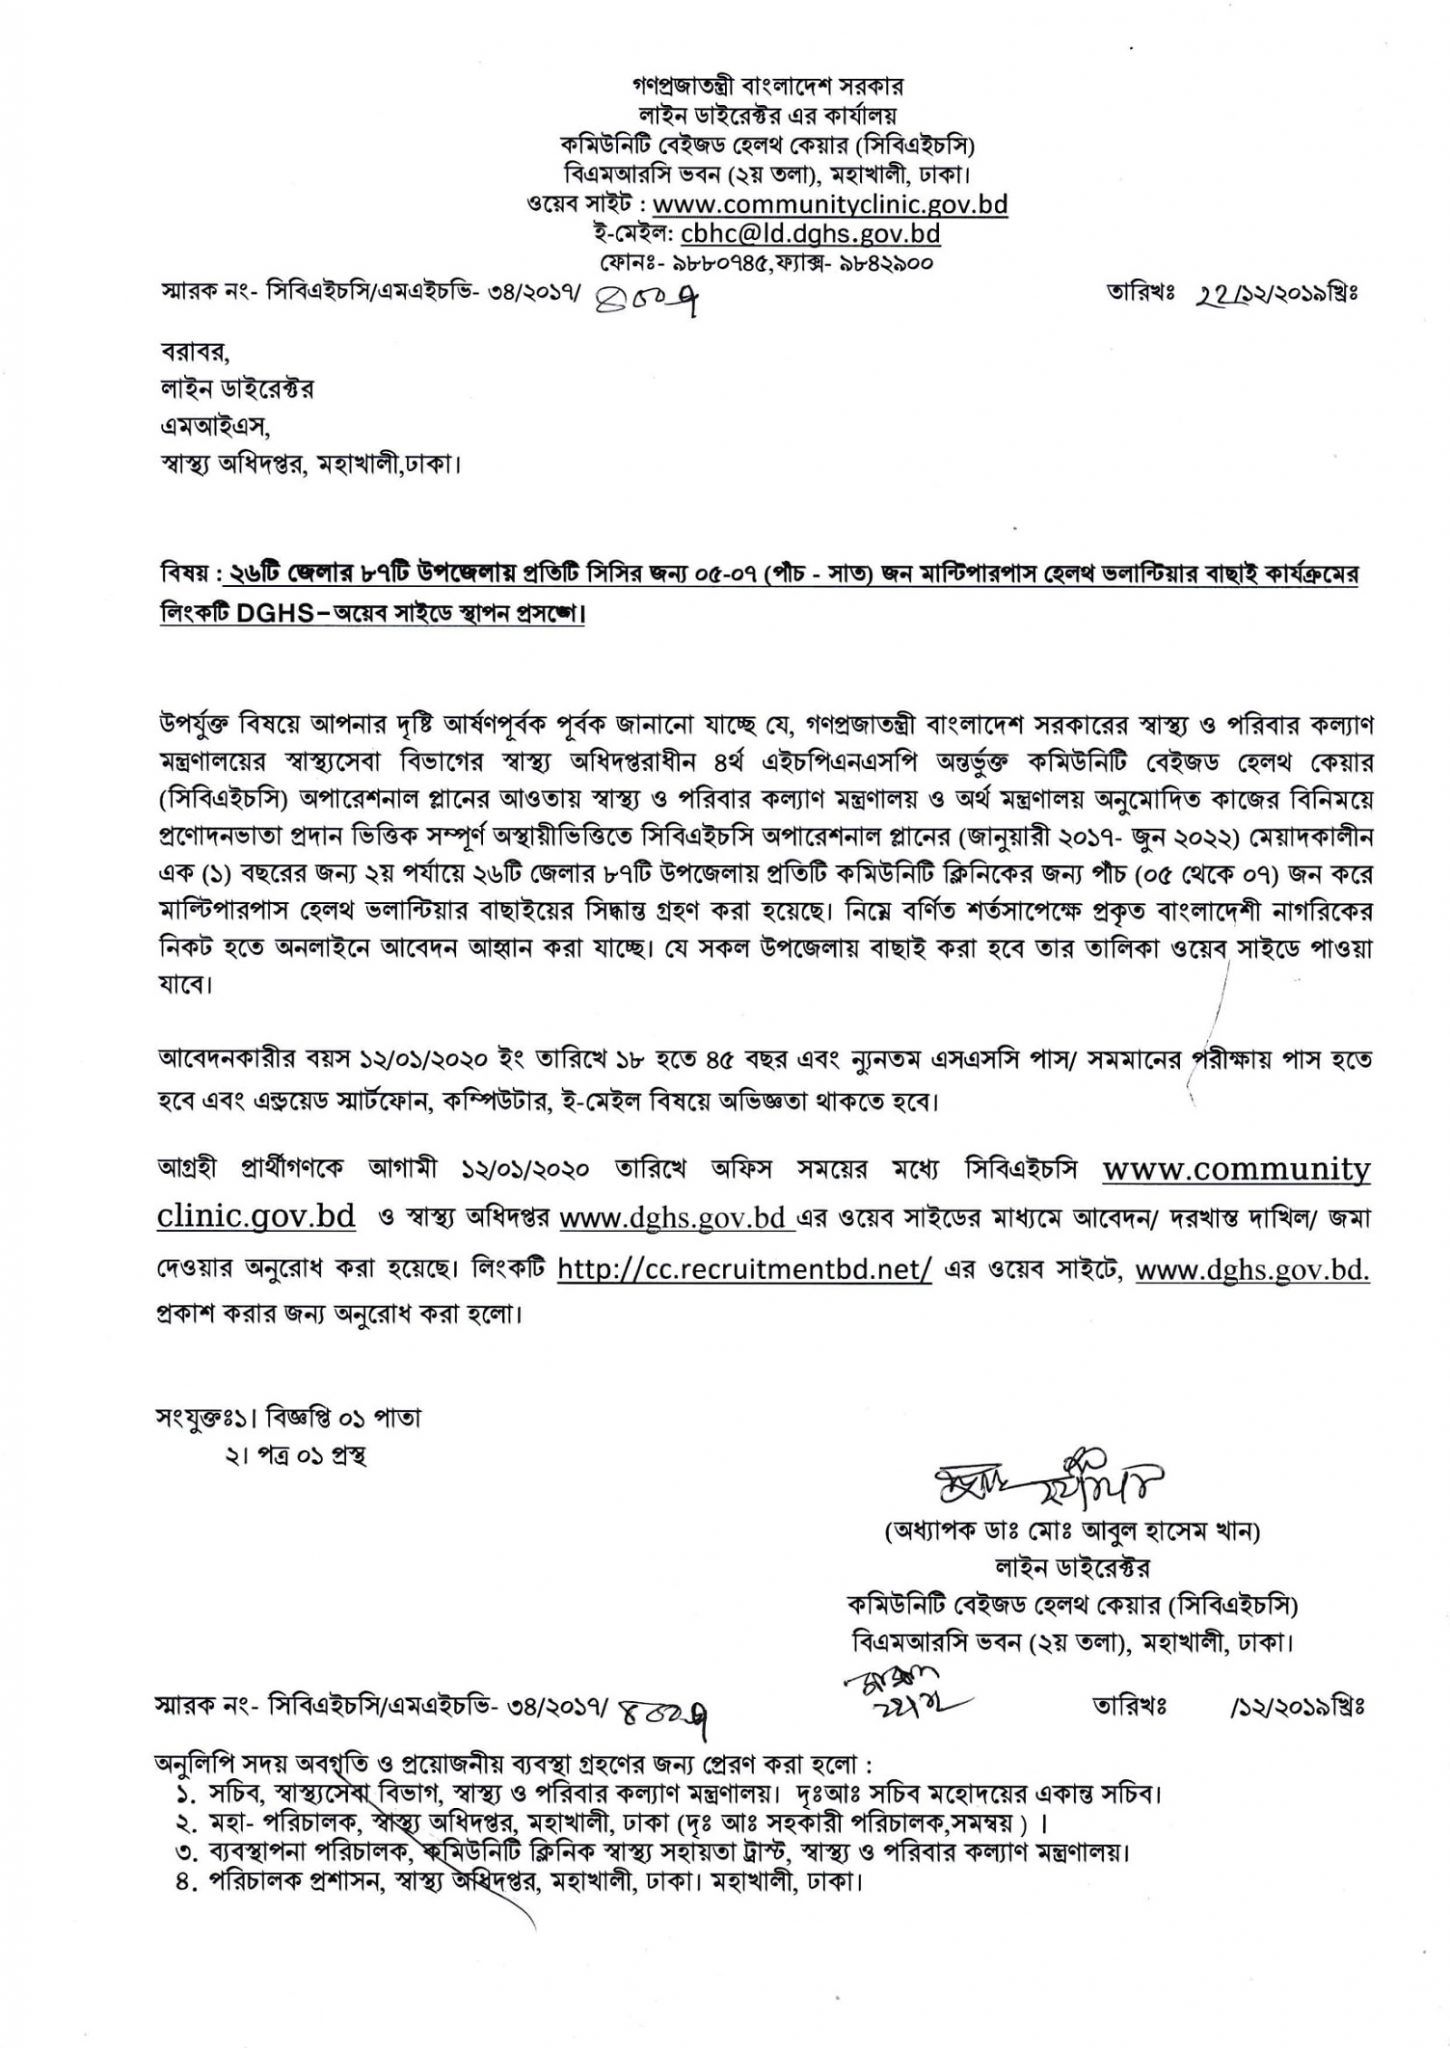 Bangladesh Community Clinic Job Circular 2020